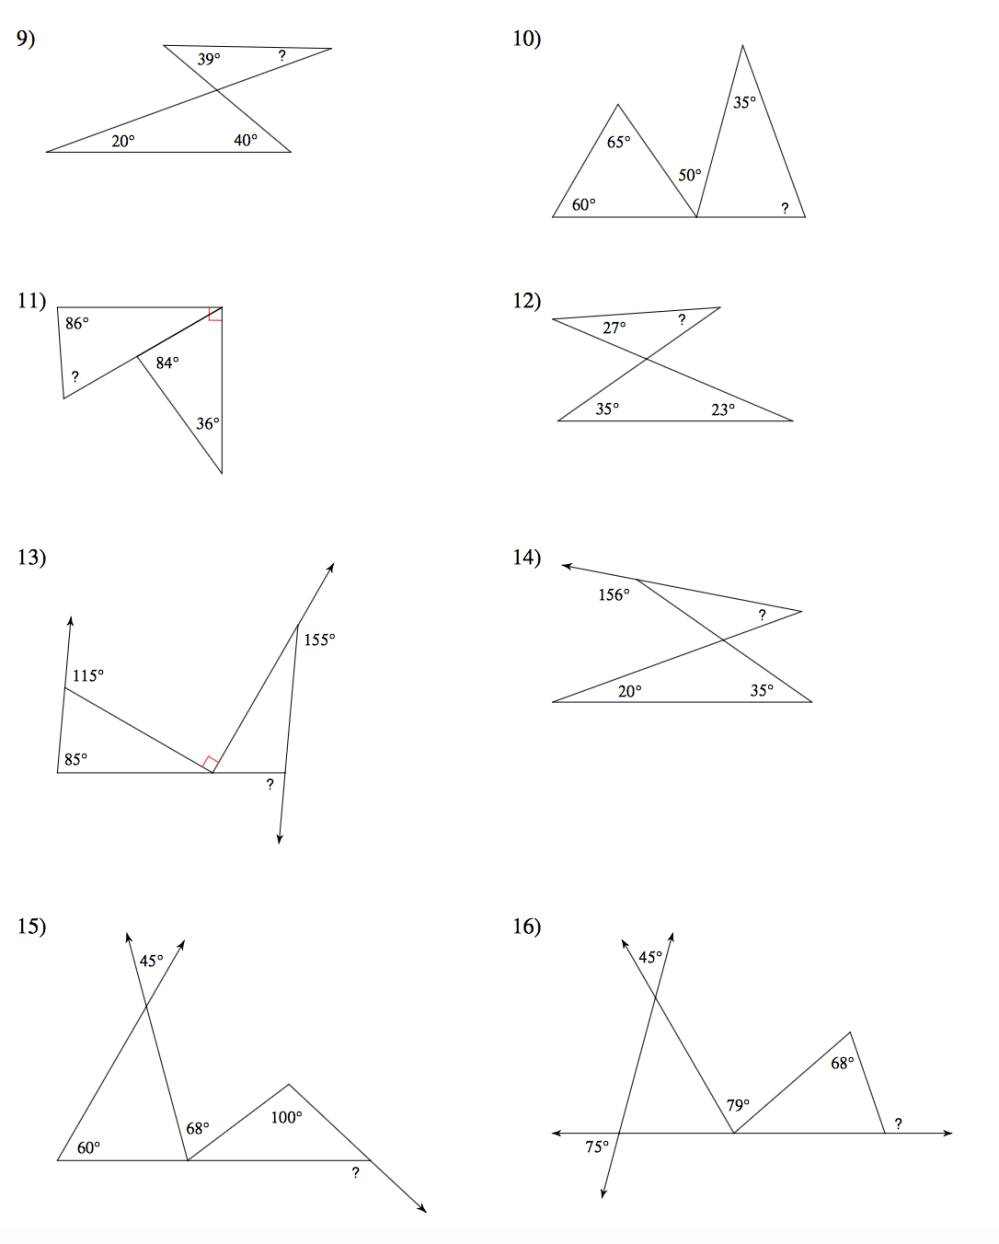 medium resolution of Angles In A Triangle Worksheet Answers - Worksheet List